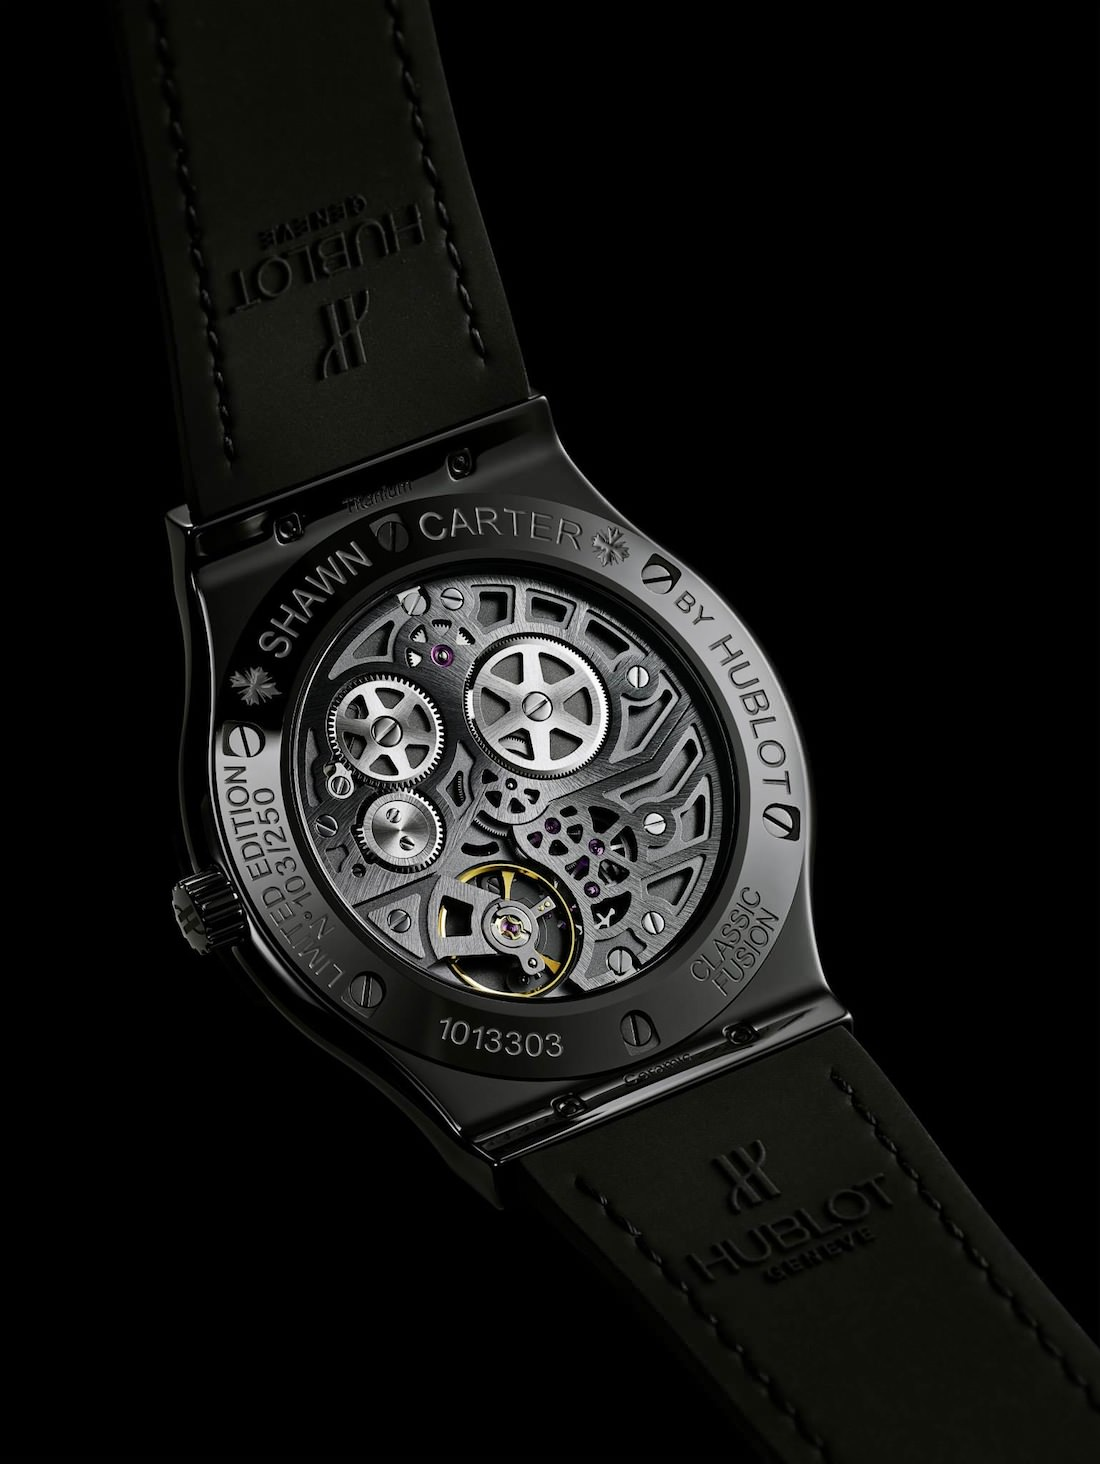 Hublot-Shawn-Carter-jayz-12